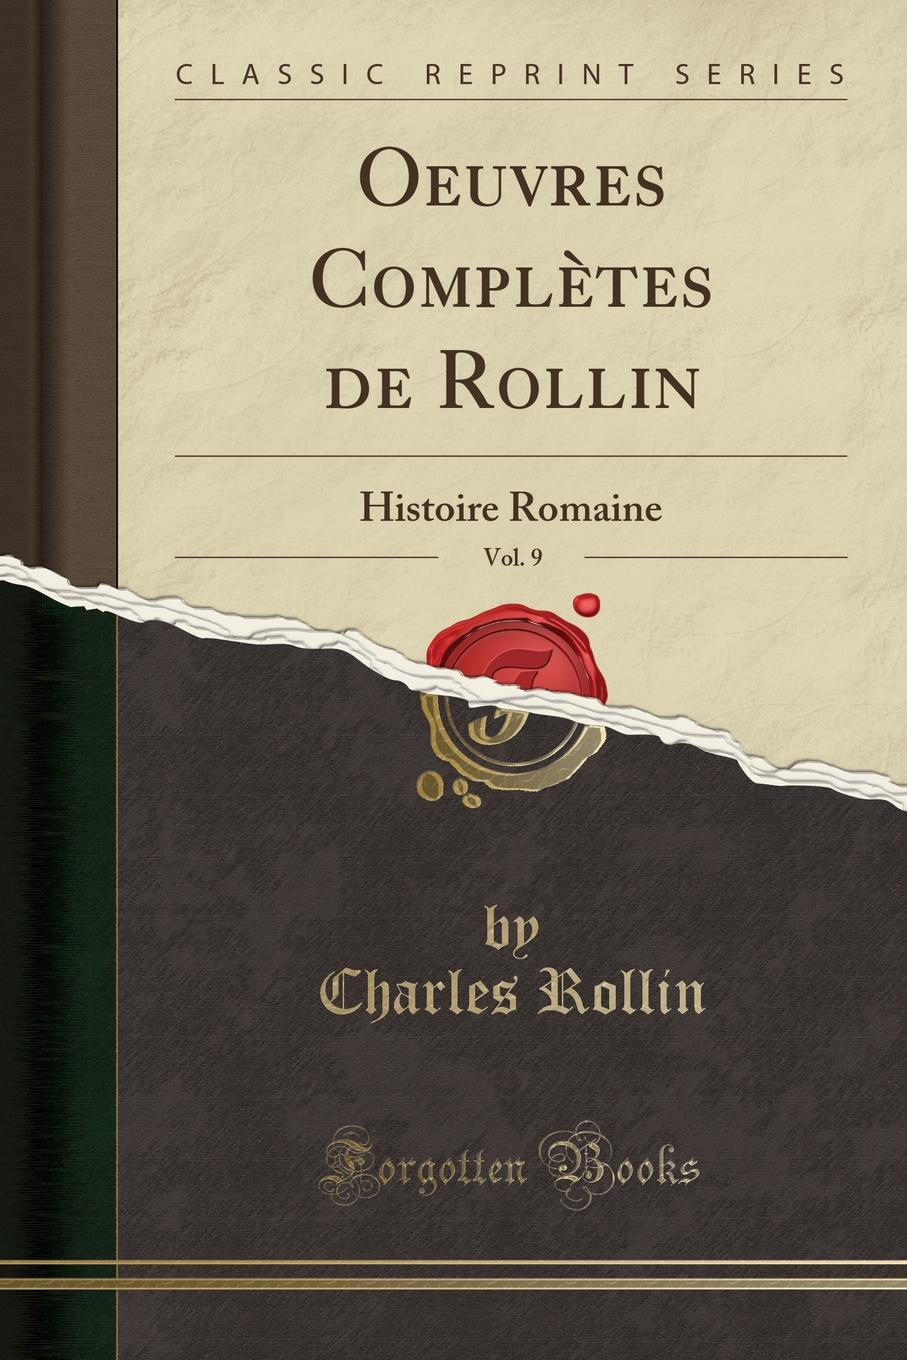 Charles Rollin Oeuvres Completes de Rollin, Vol. 9. Histoire Romaine (Classic Reprint)